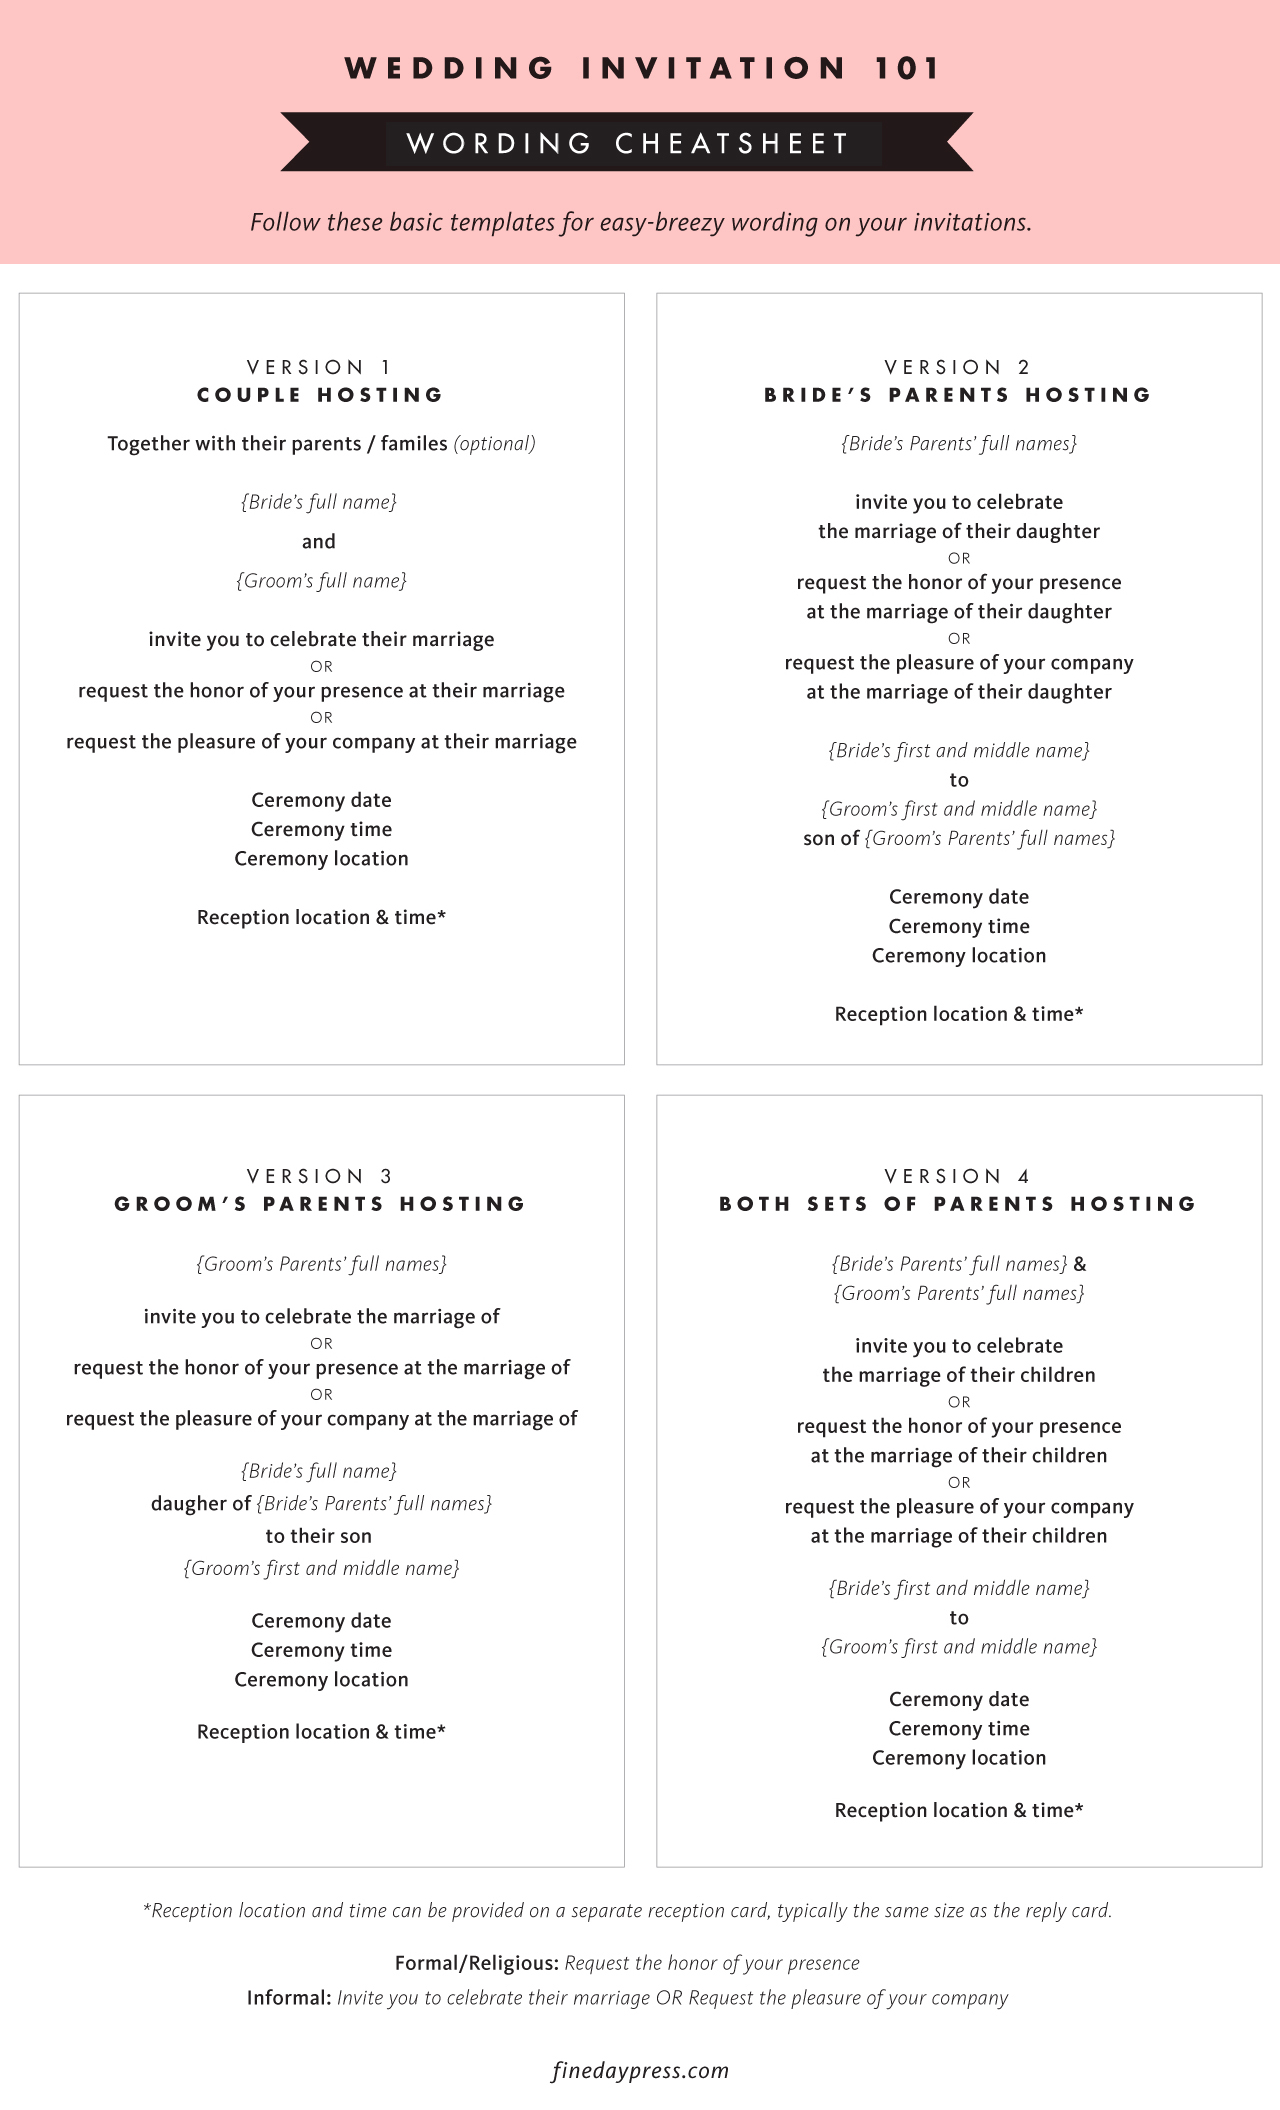 Wedding Invitation Wording Cheat Sheet / Fine Day Press for Oh So Beautiful Paper